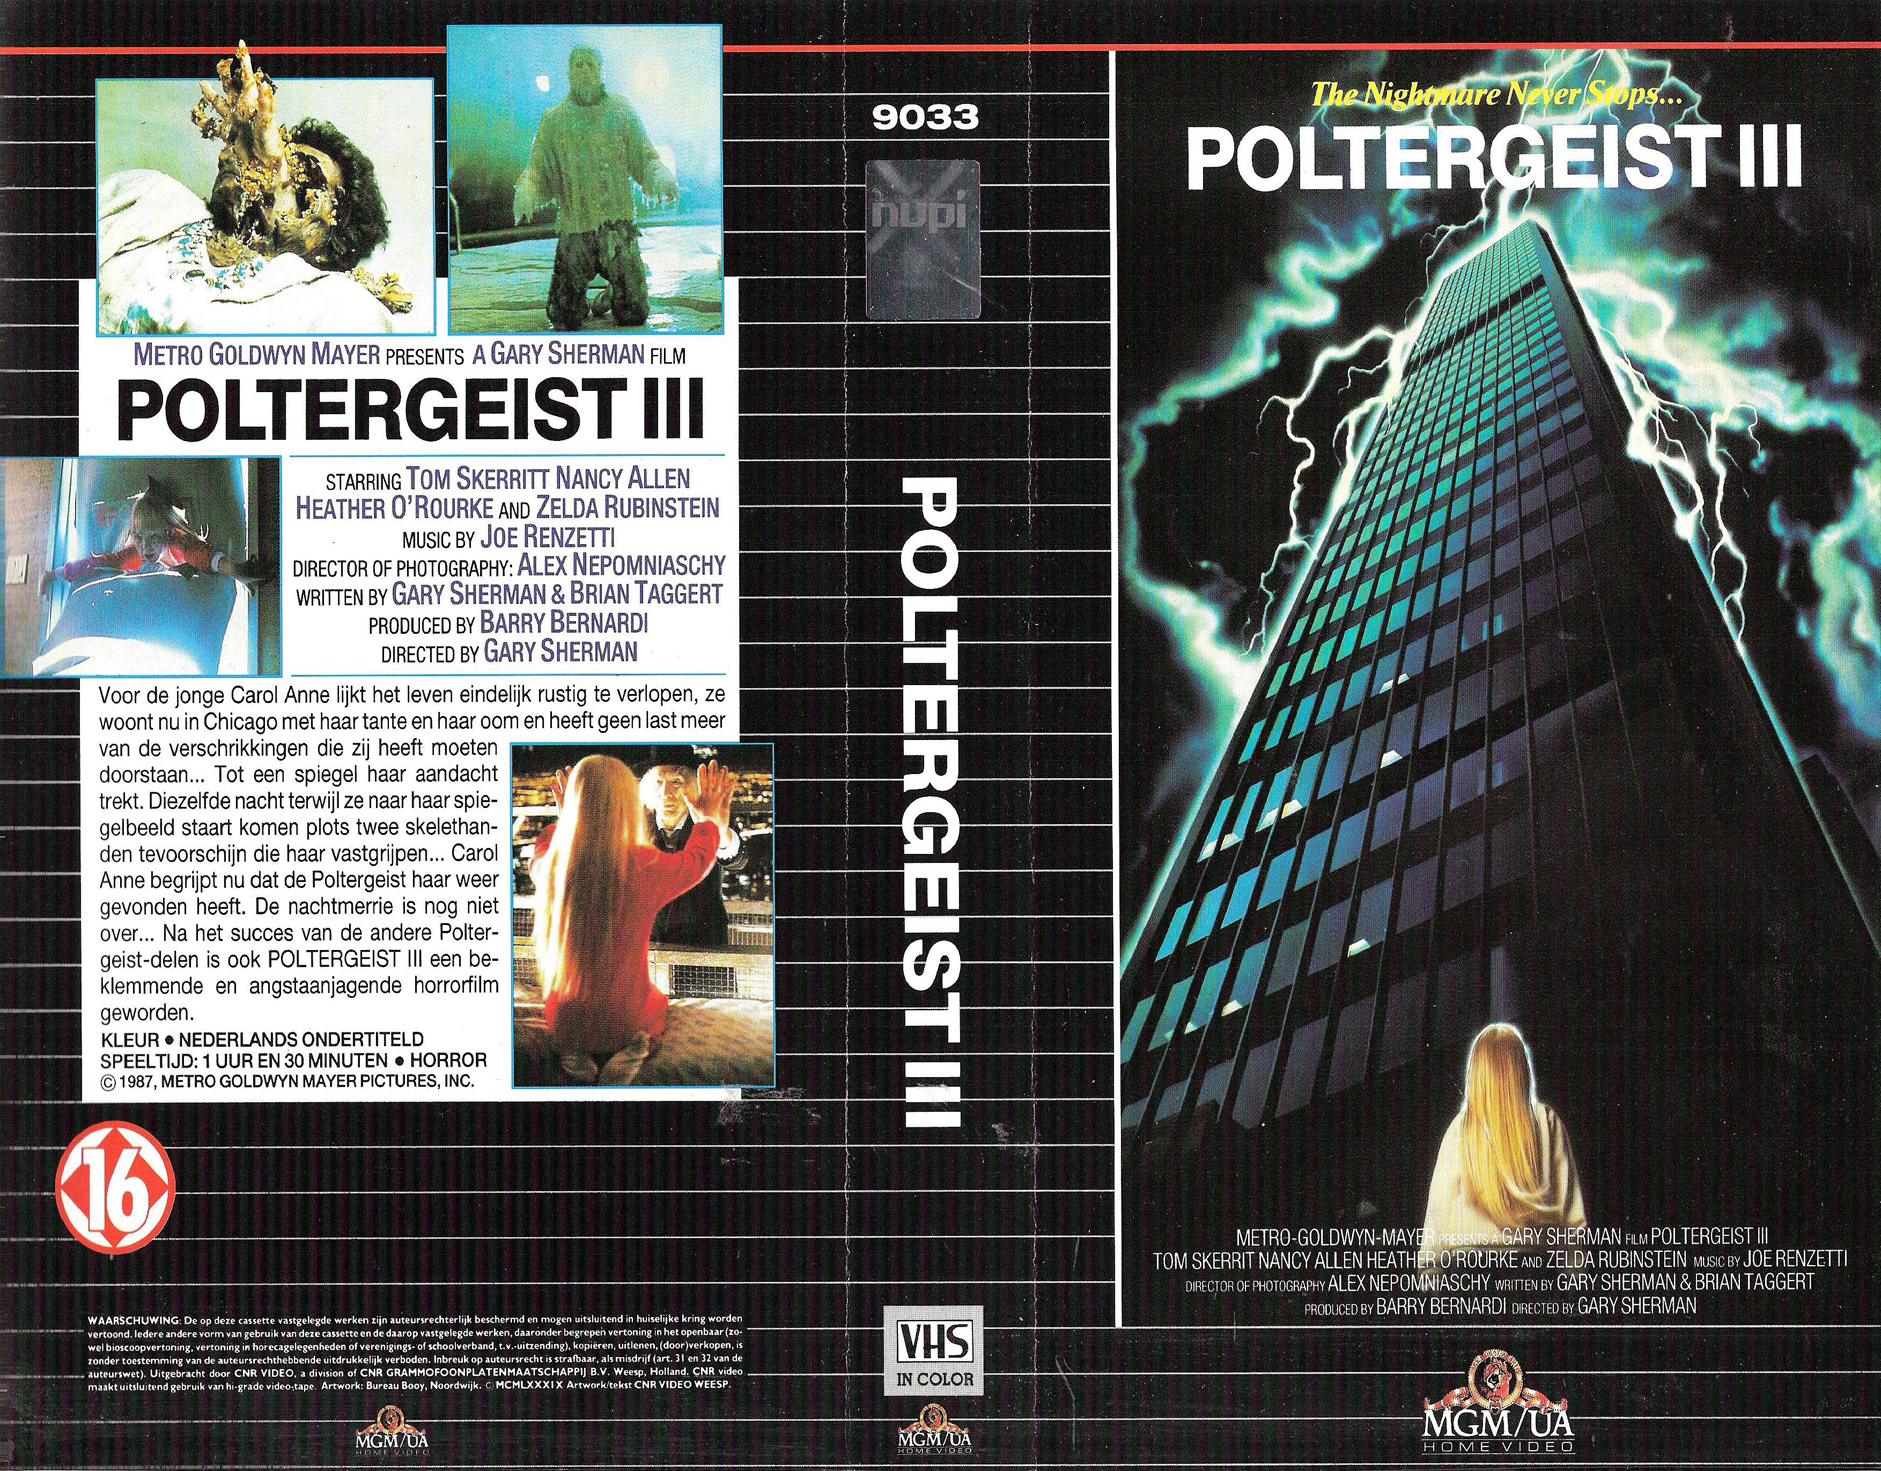 POLTERGEIST 3 VHS COVER, VHS COVERS